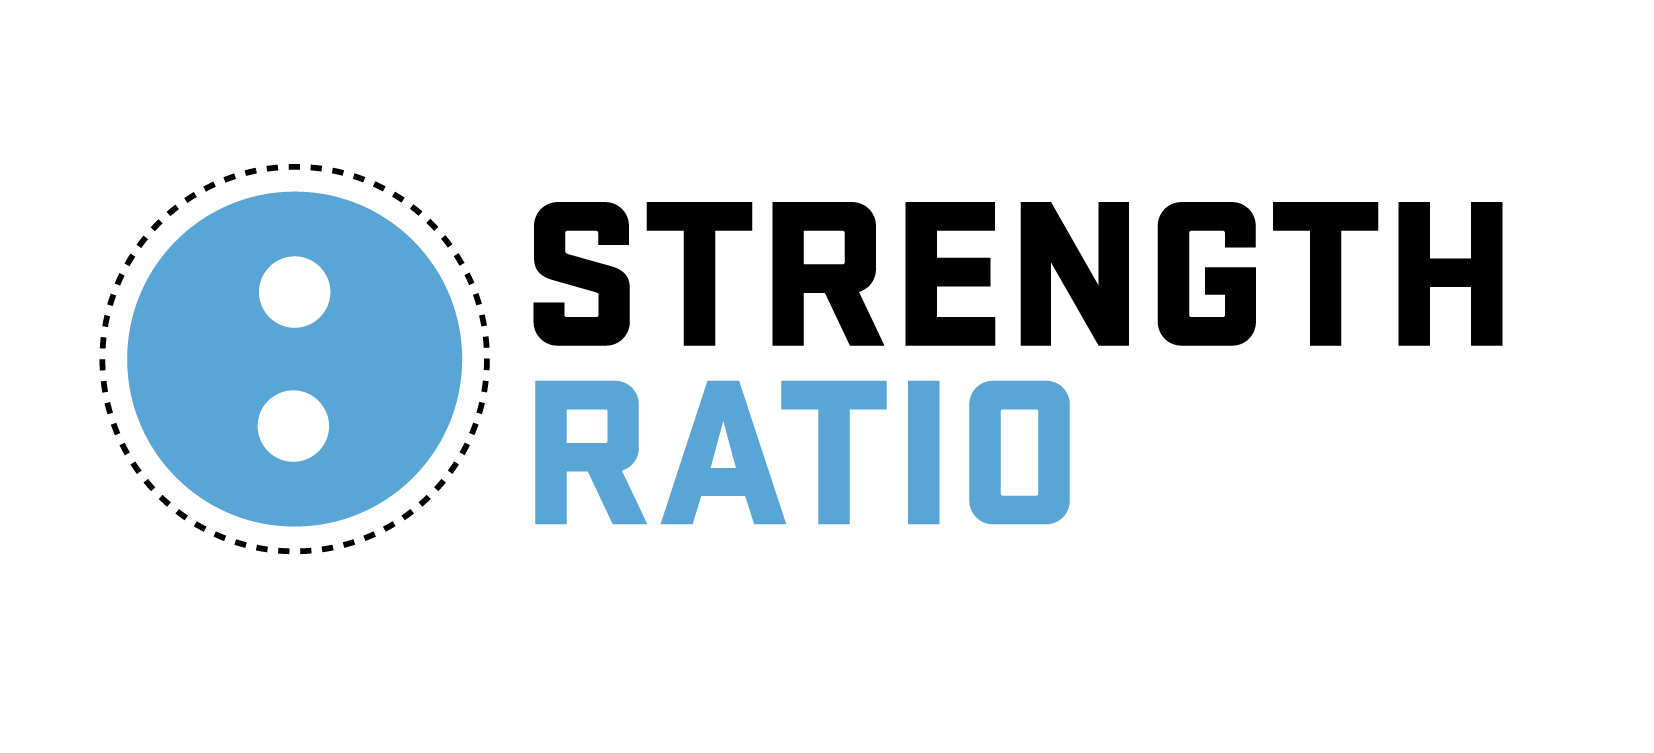 Strength Ratio-01.png